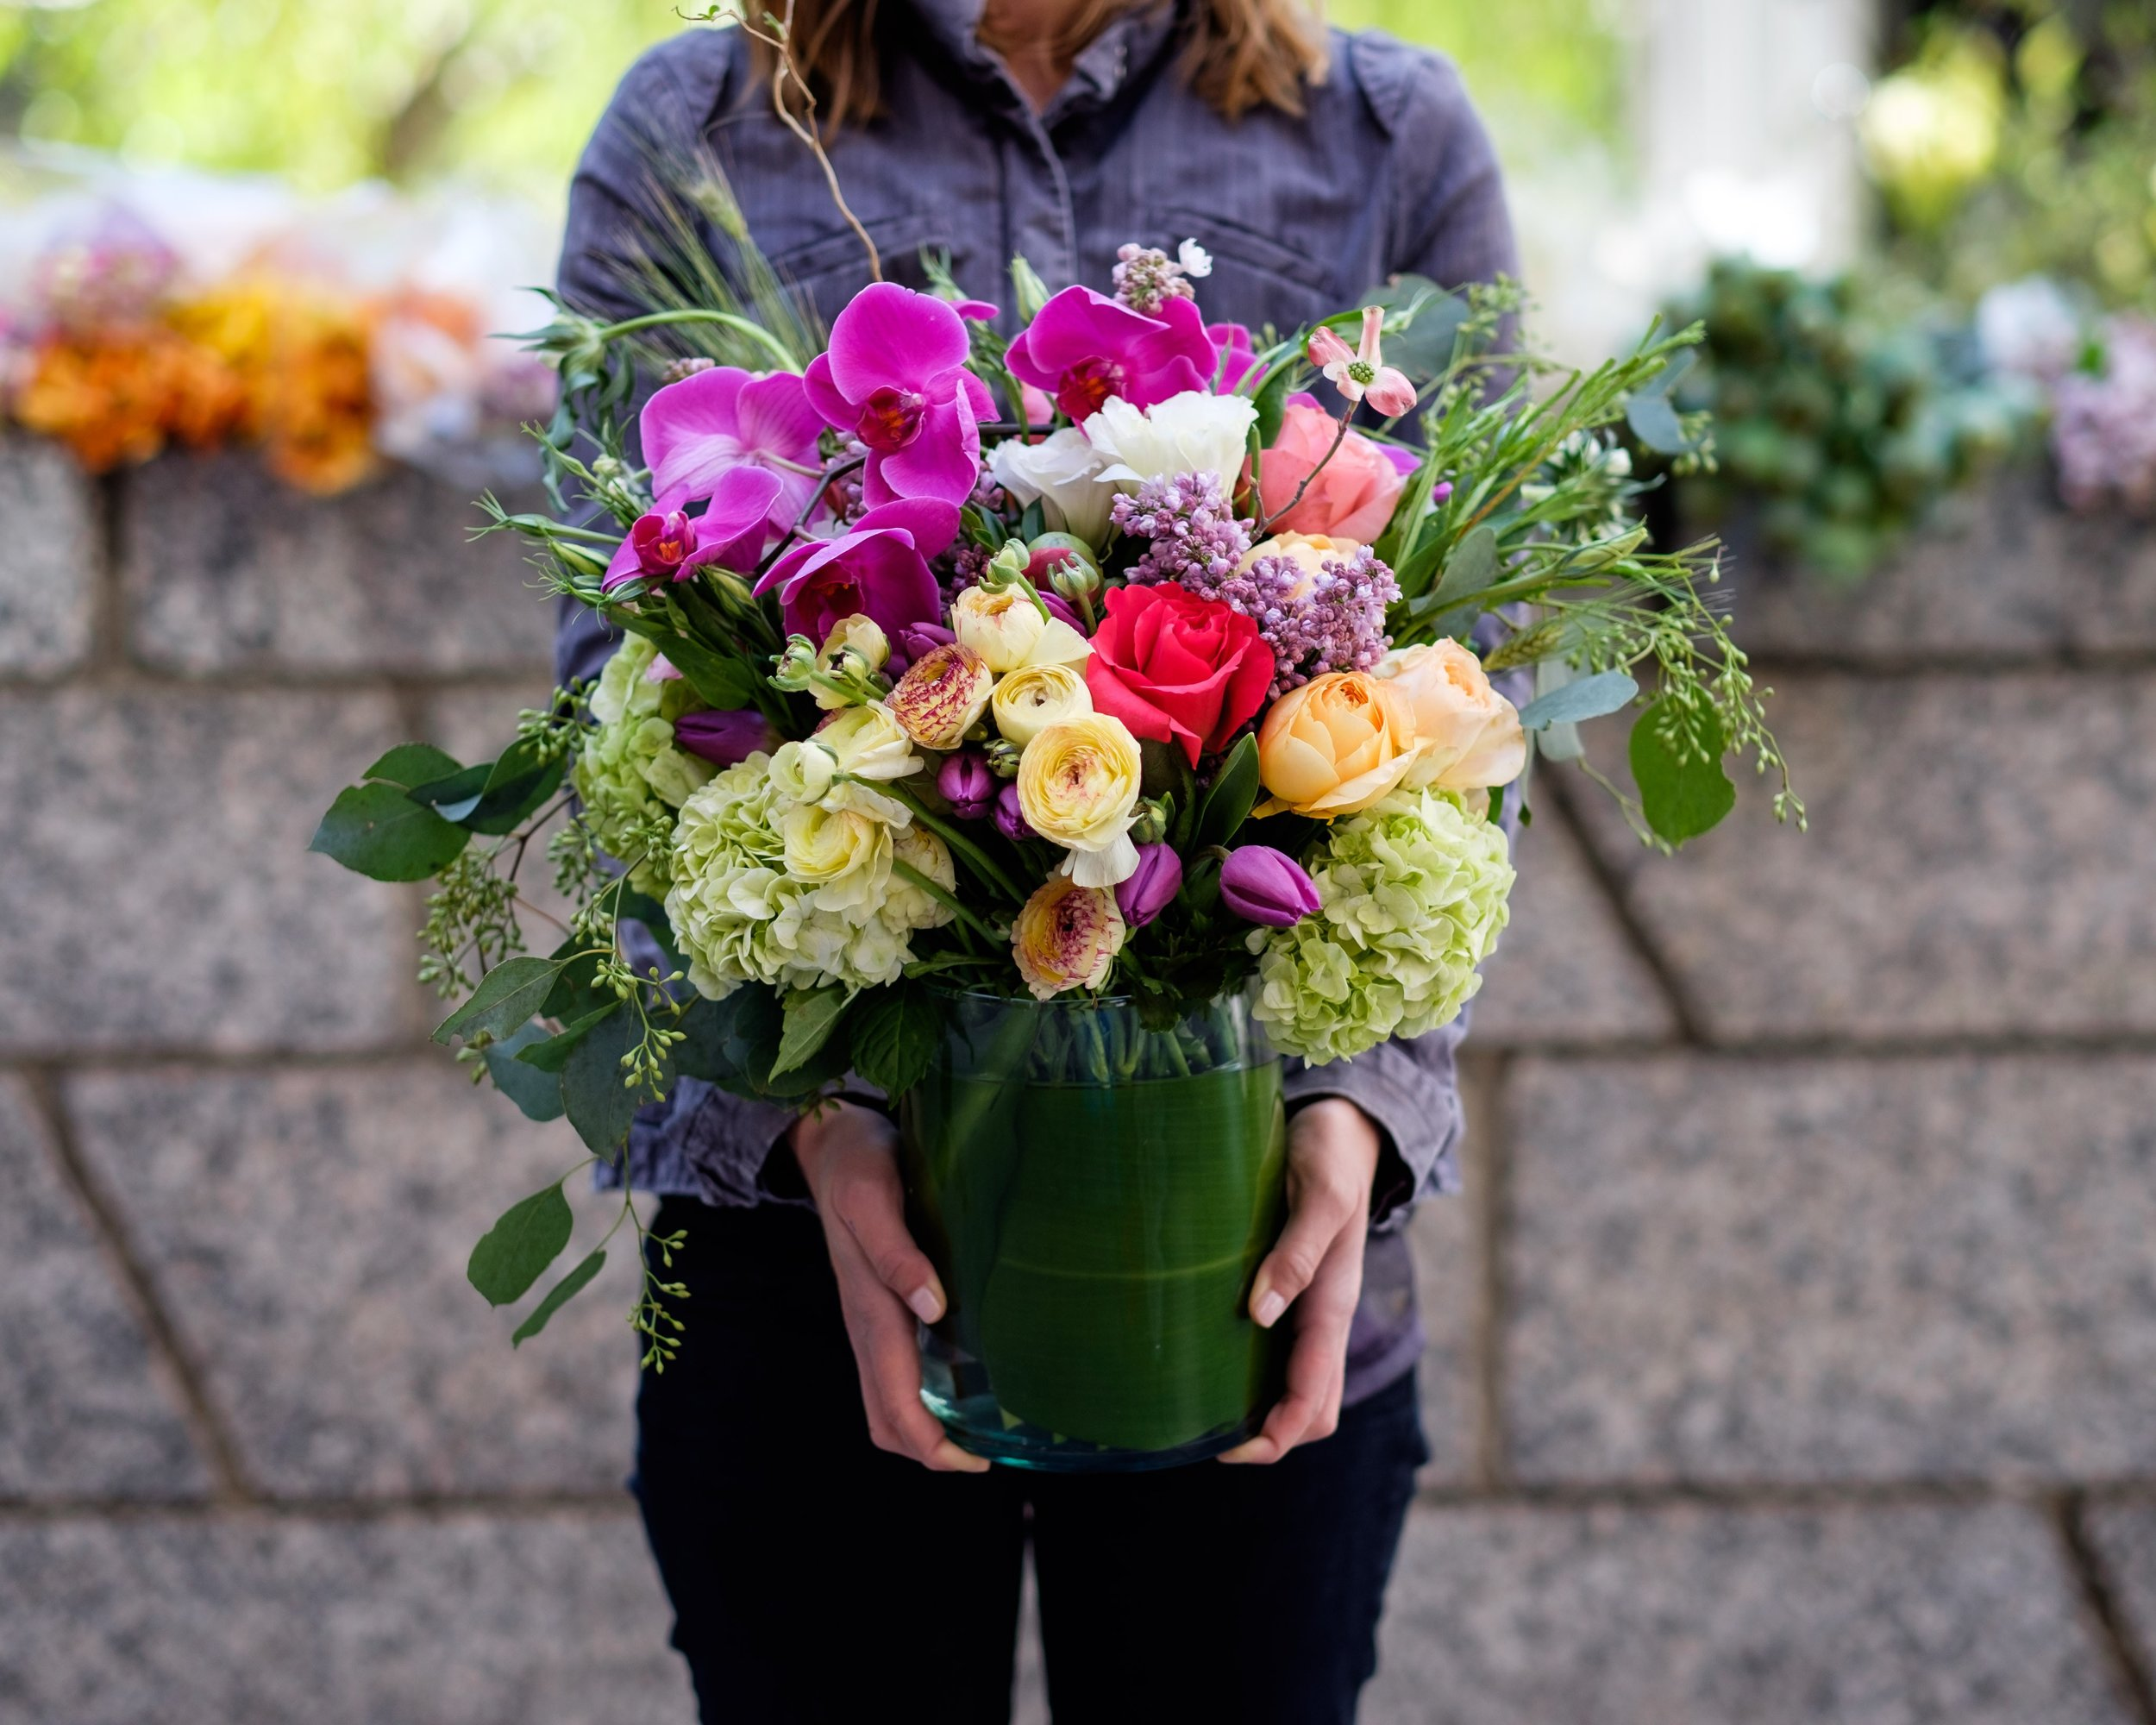 Teleflora Service - Available with us